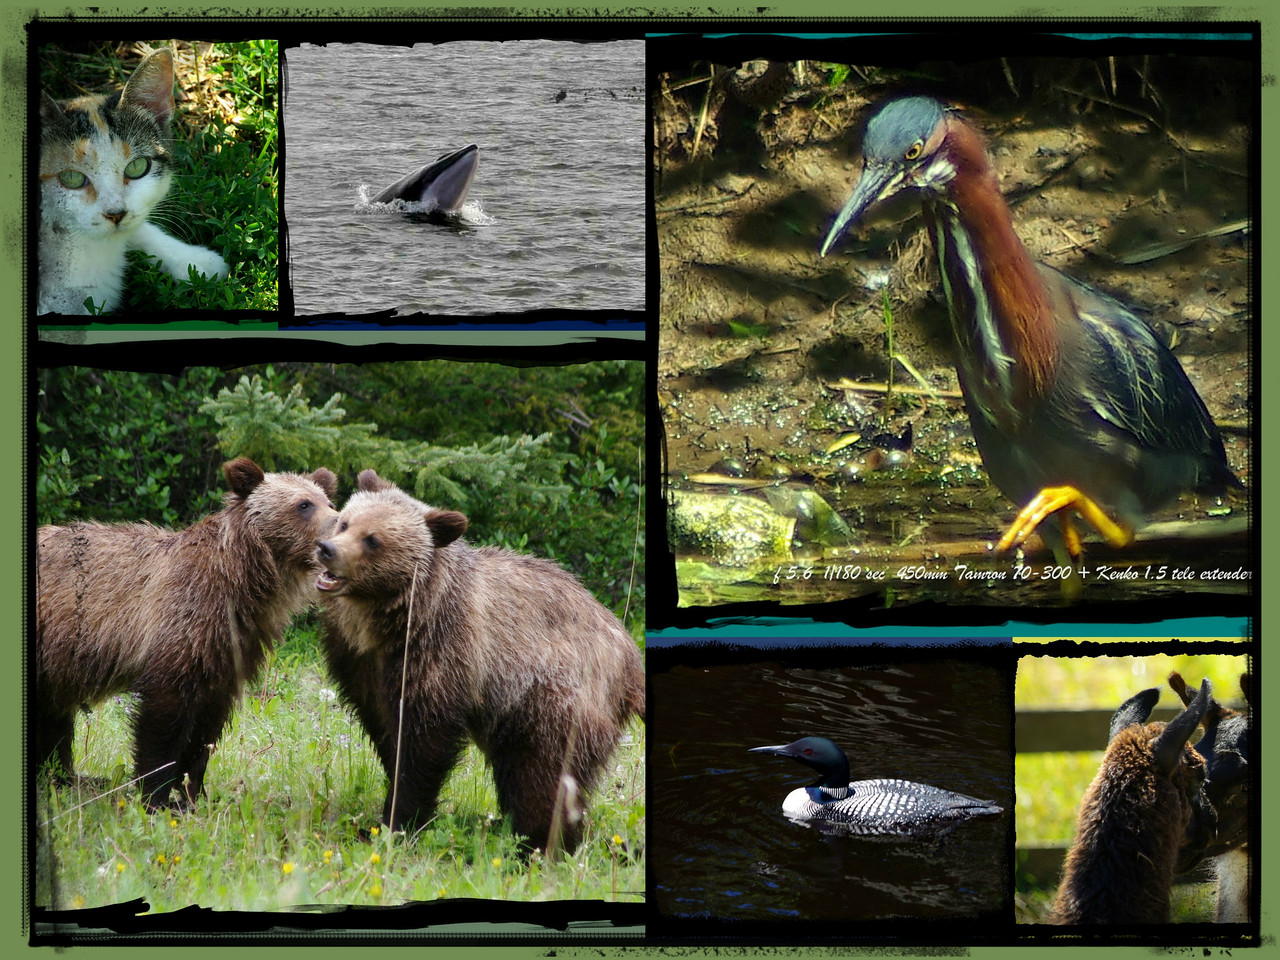 ANIMAL SIGHTINGS ARE A PART OF EVERY TRIP HOPEFULLY